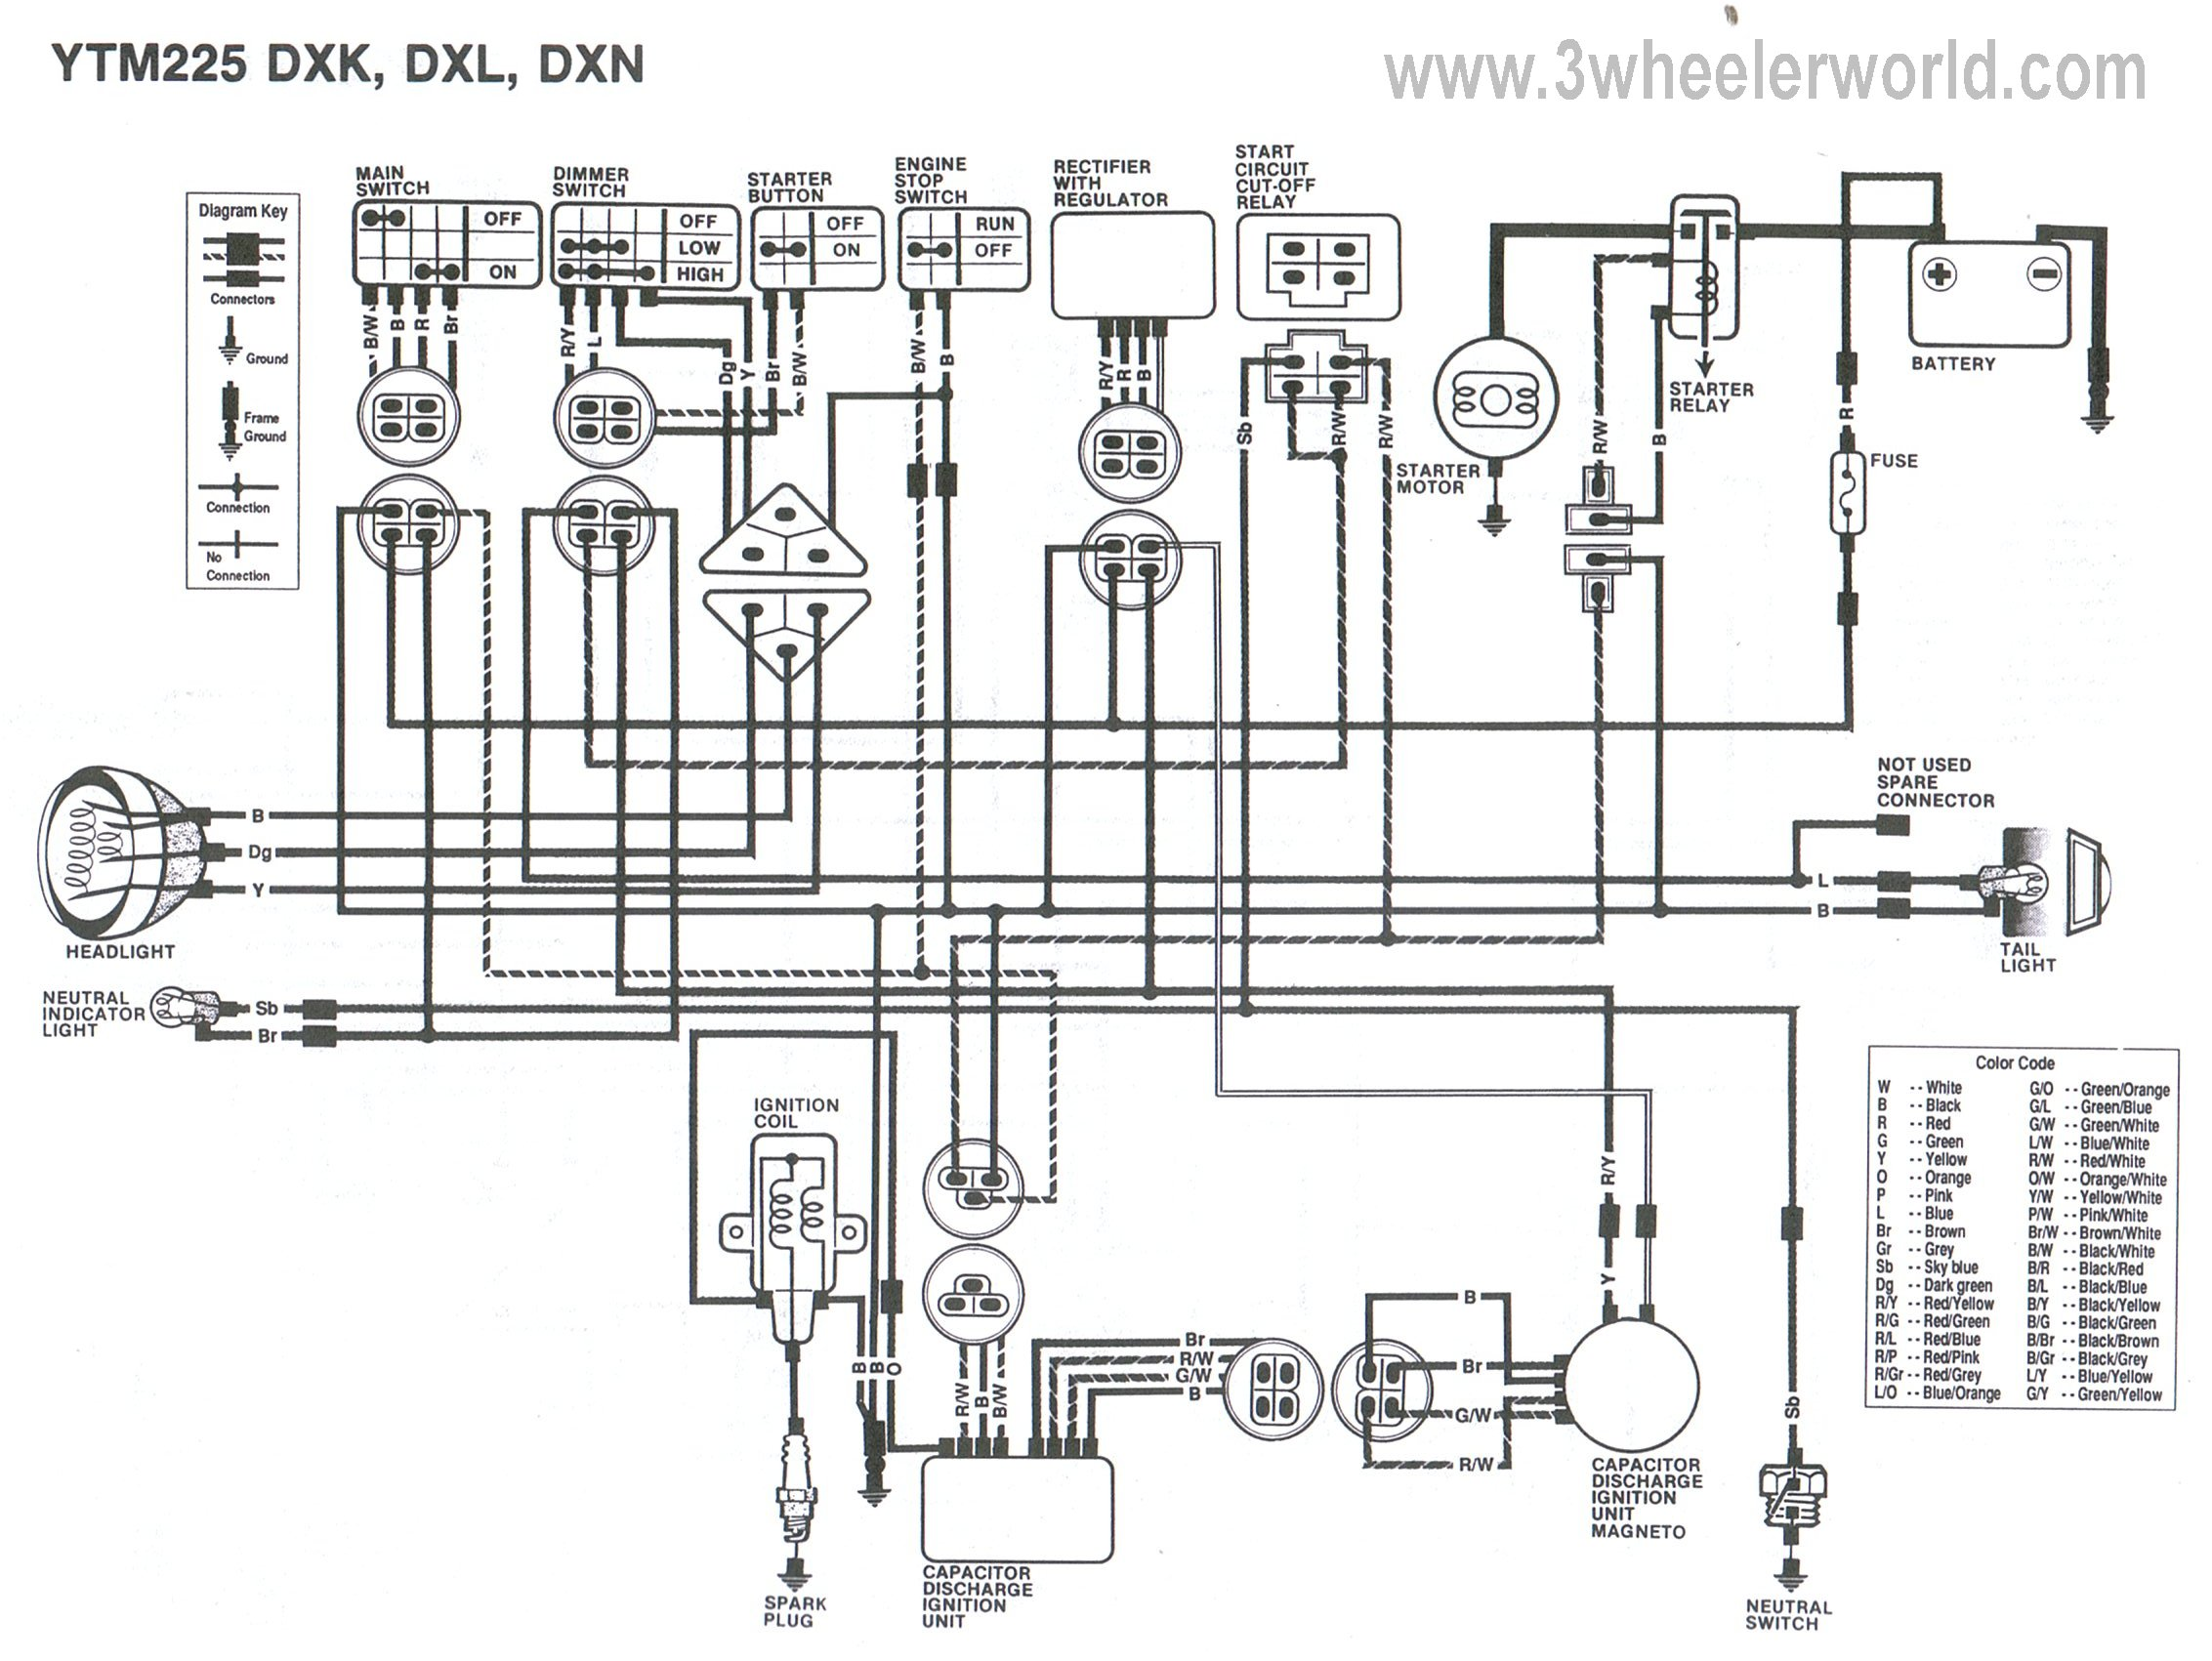 YTM225DXKDXLDXN 3 wheeler world tech help yamaha wiring diagrams yamaha ttr 225 wiring diagram at honlapkeszites.co